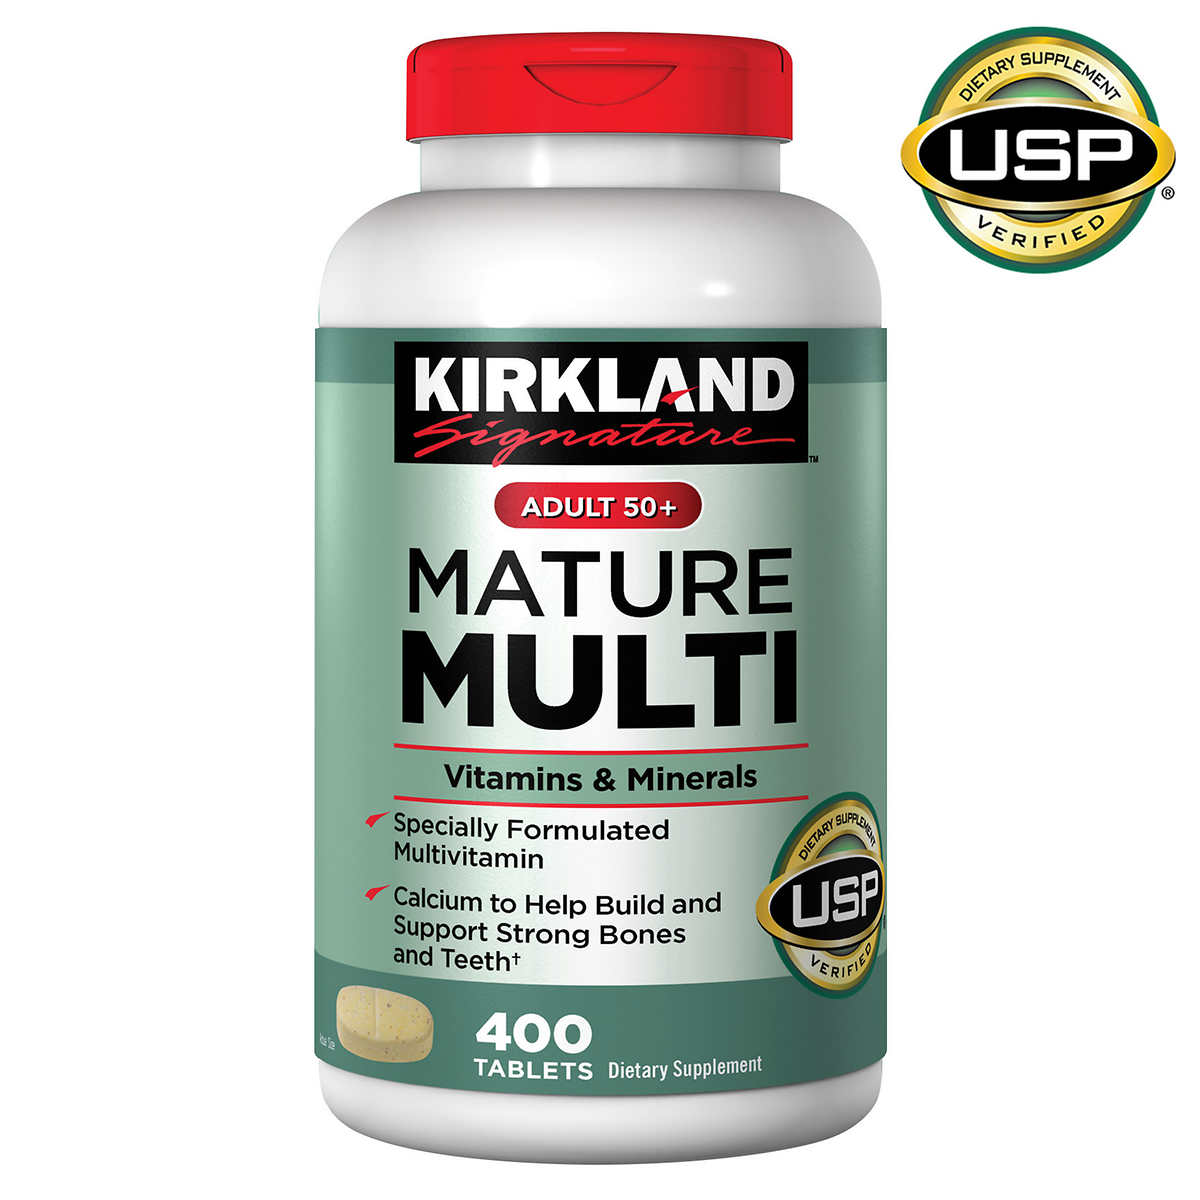 Kirkland Signature Adult 50 Mature Multi Vitamins Minerals 400 Tablets